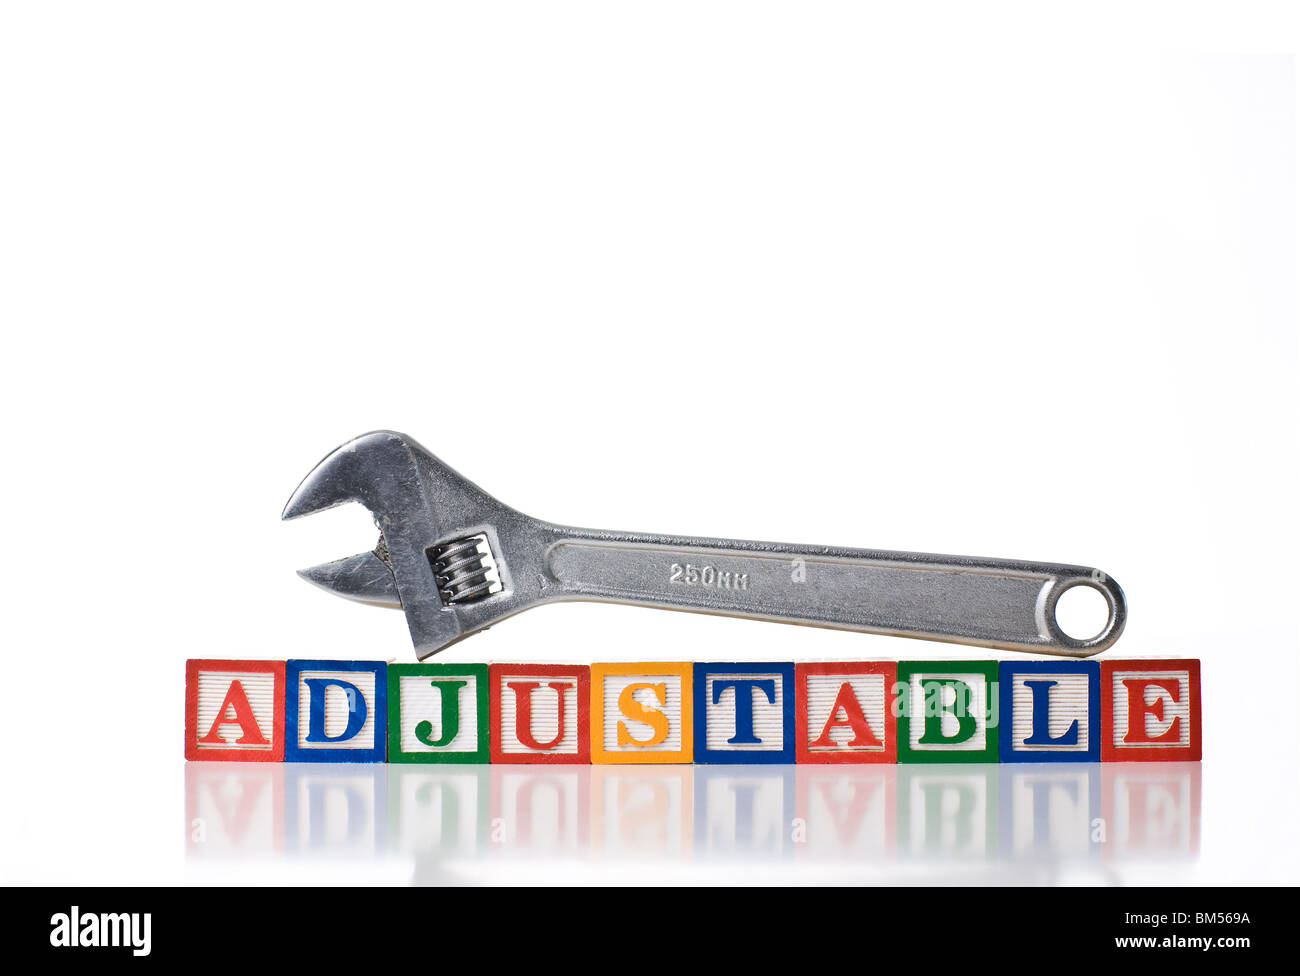 Colorful children's blocks spelling ADJUSTABLE with an adjustable wrench or spanner on top - Stock Image